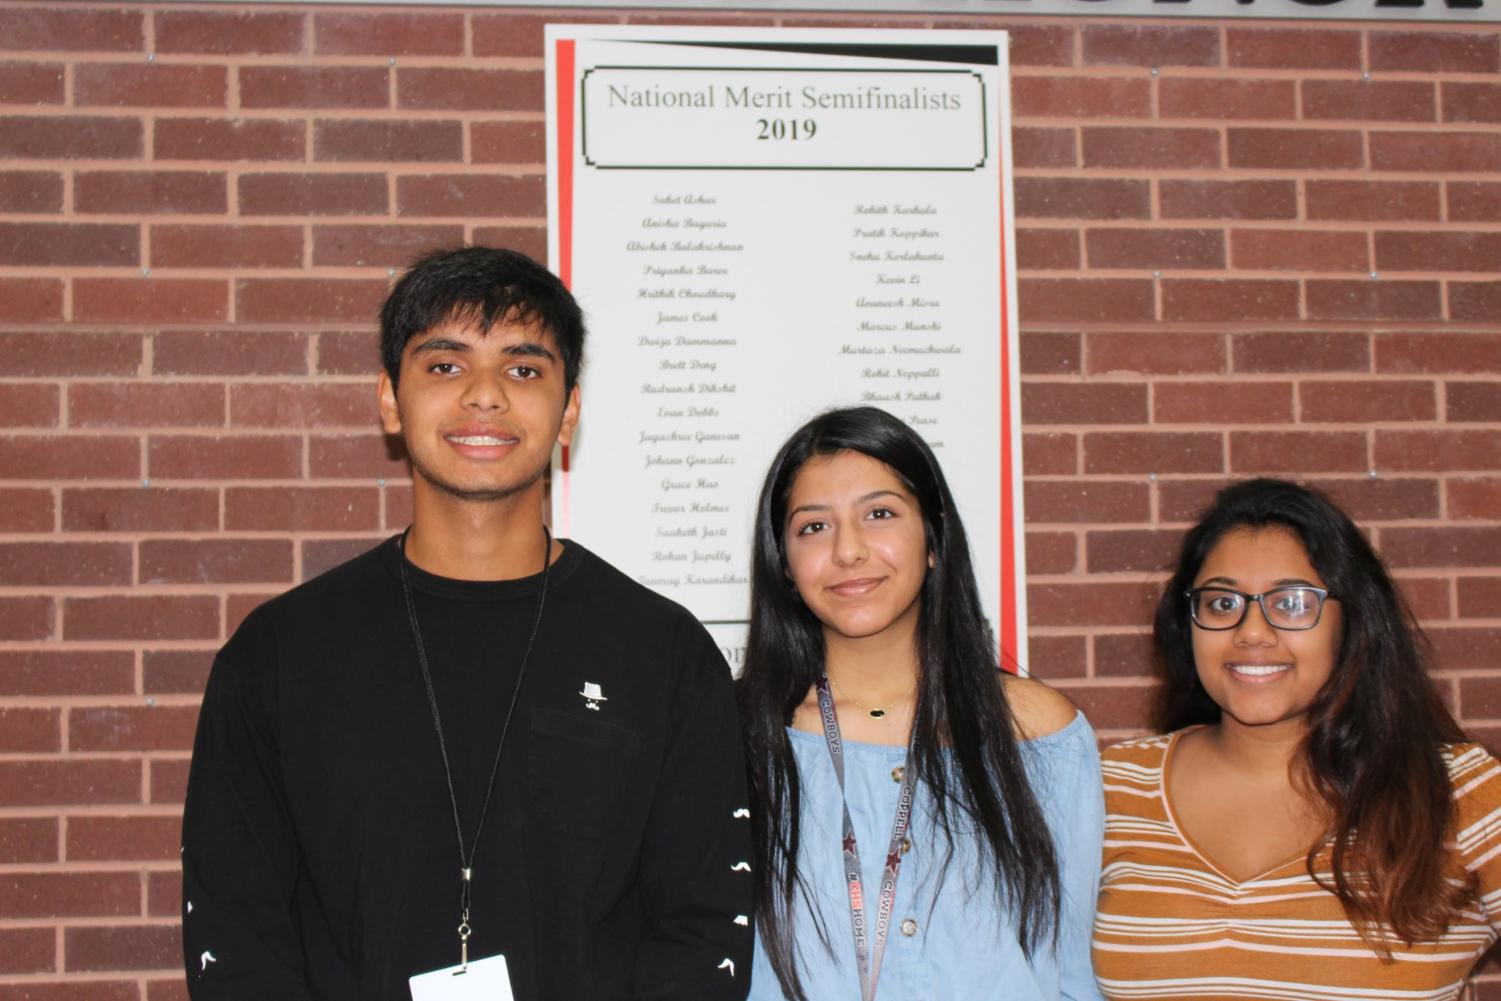 Coppell High School seniors Mihir Ranjan, Sonali Chaturvedi and Reina Raj were announced as National Semifinalists on Sept. 25 along with 32 other CHS students. National Semifinalists are students who scored in the top 1% on the PSAT, and they are granted the opportunity to compete for scholarships to colleges.